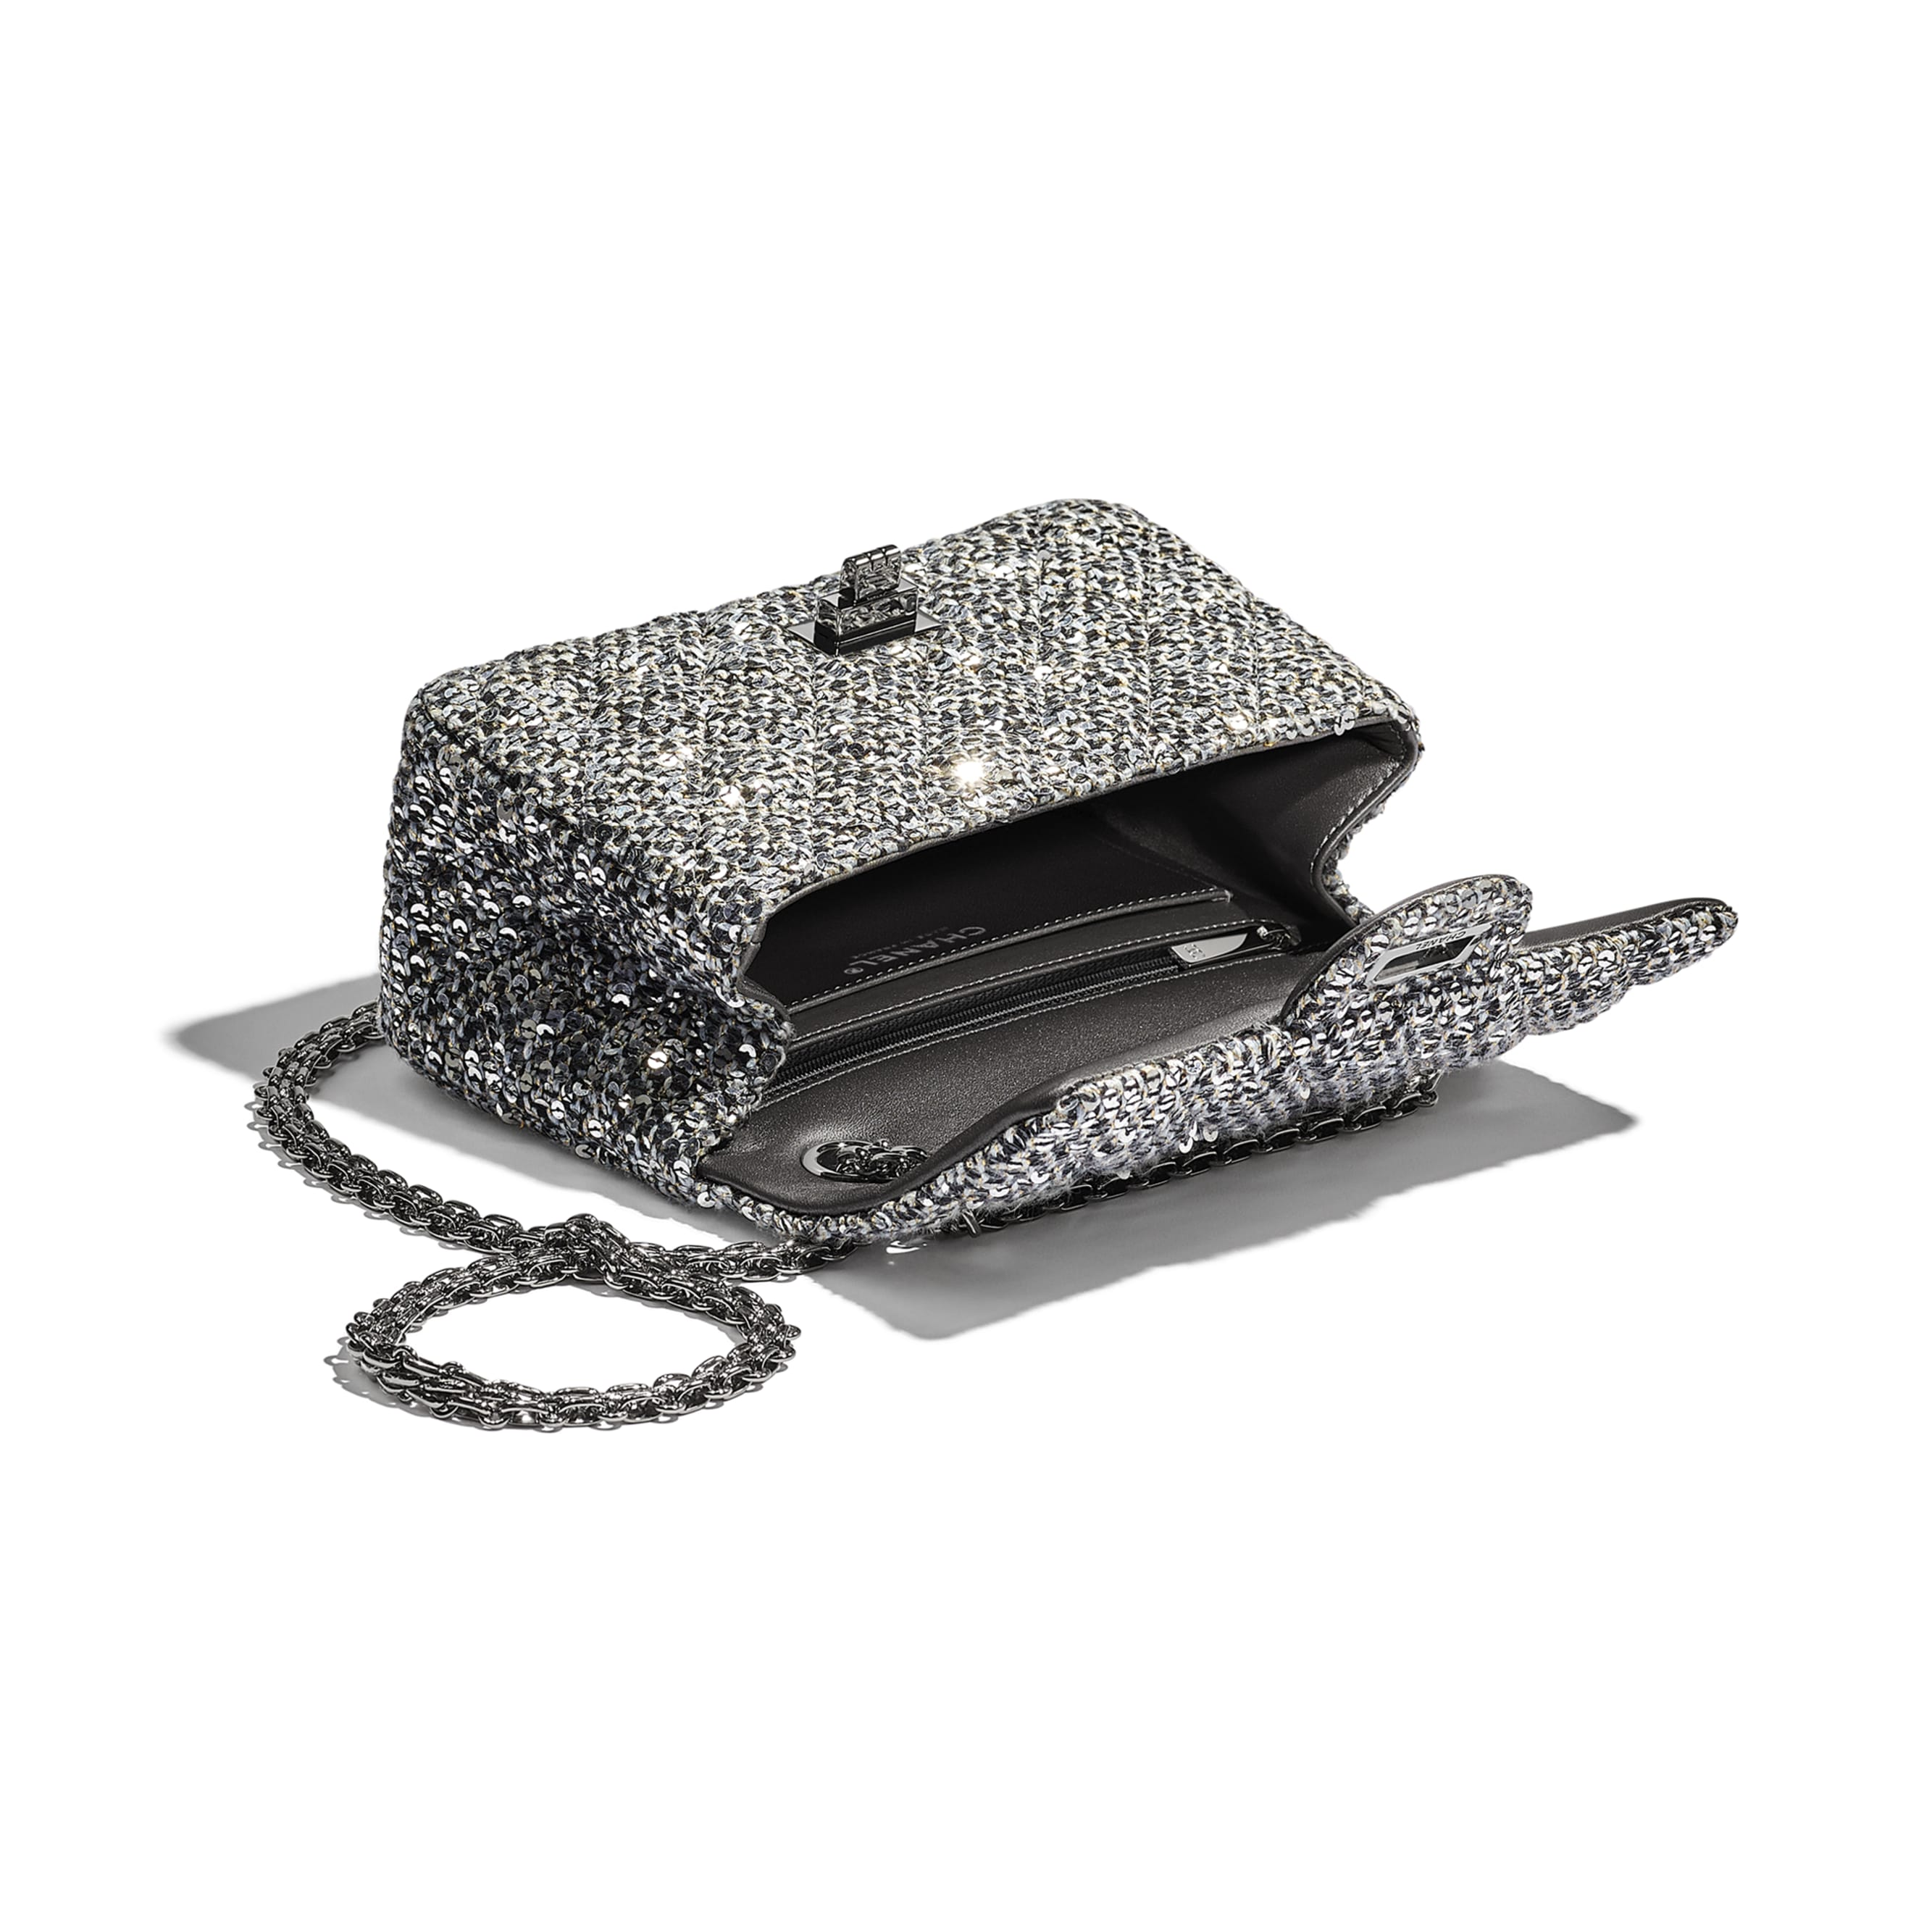 Small 2.55 Handbag - Silver, Black & Gold - Tweed, Sequins & Ruthenium-Finish Metal - CHANEL - Other view - see standard sized version